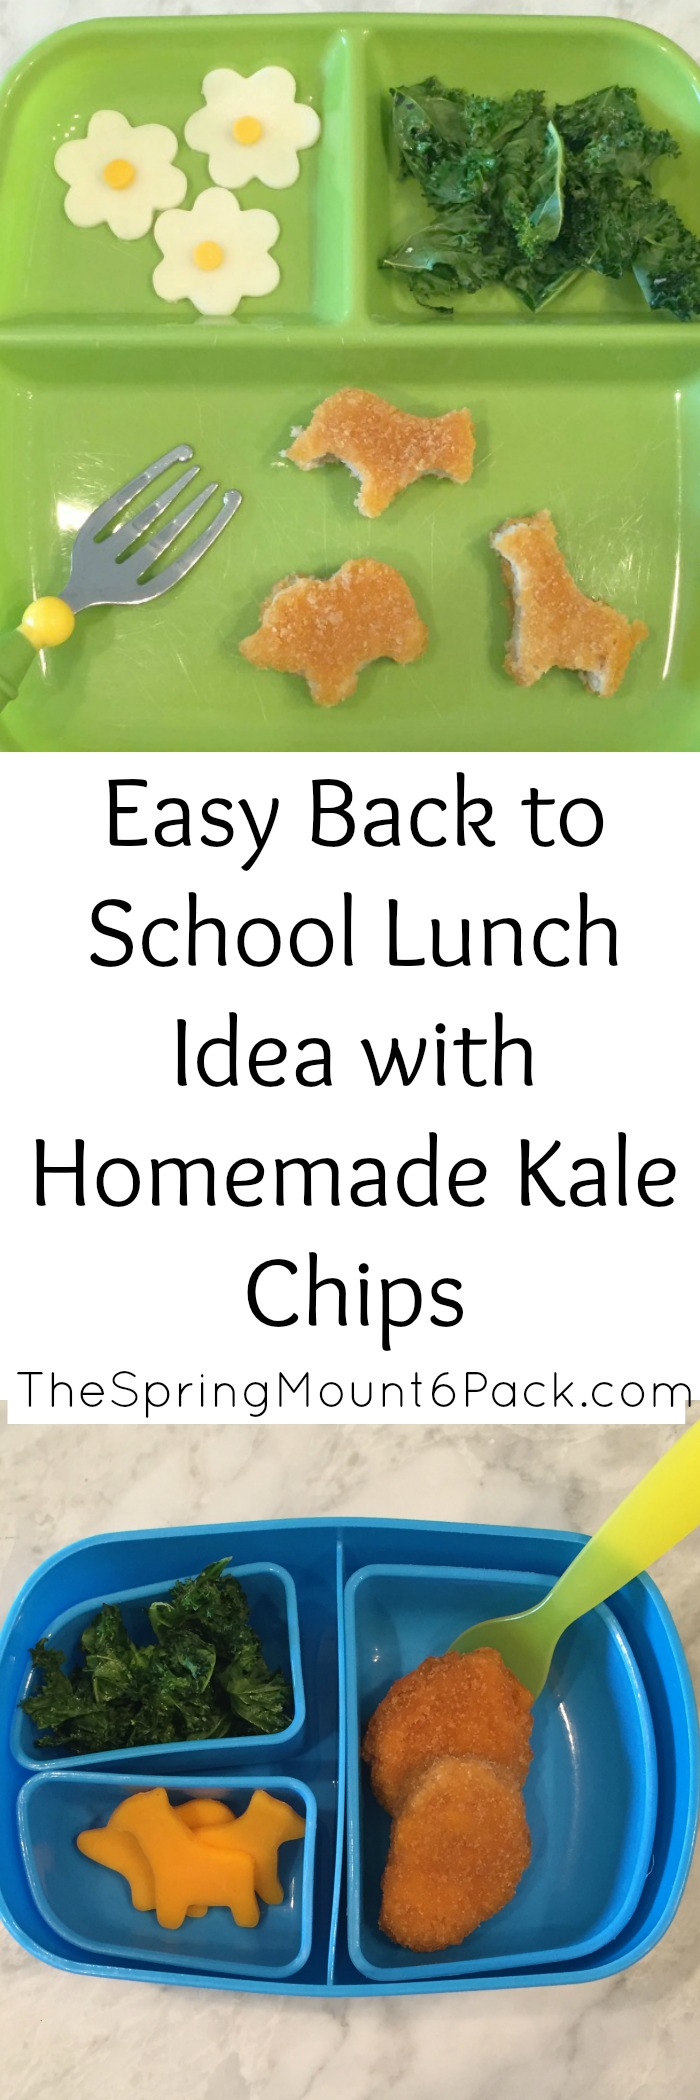 Back to school means back to school lunch ideas. Here is a fun back to school lunch idea with a bento box. Make a back to school lunch fun with homemade kale chips and fun shaped cheese.